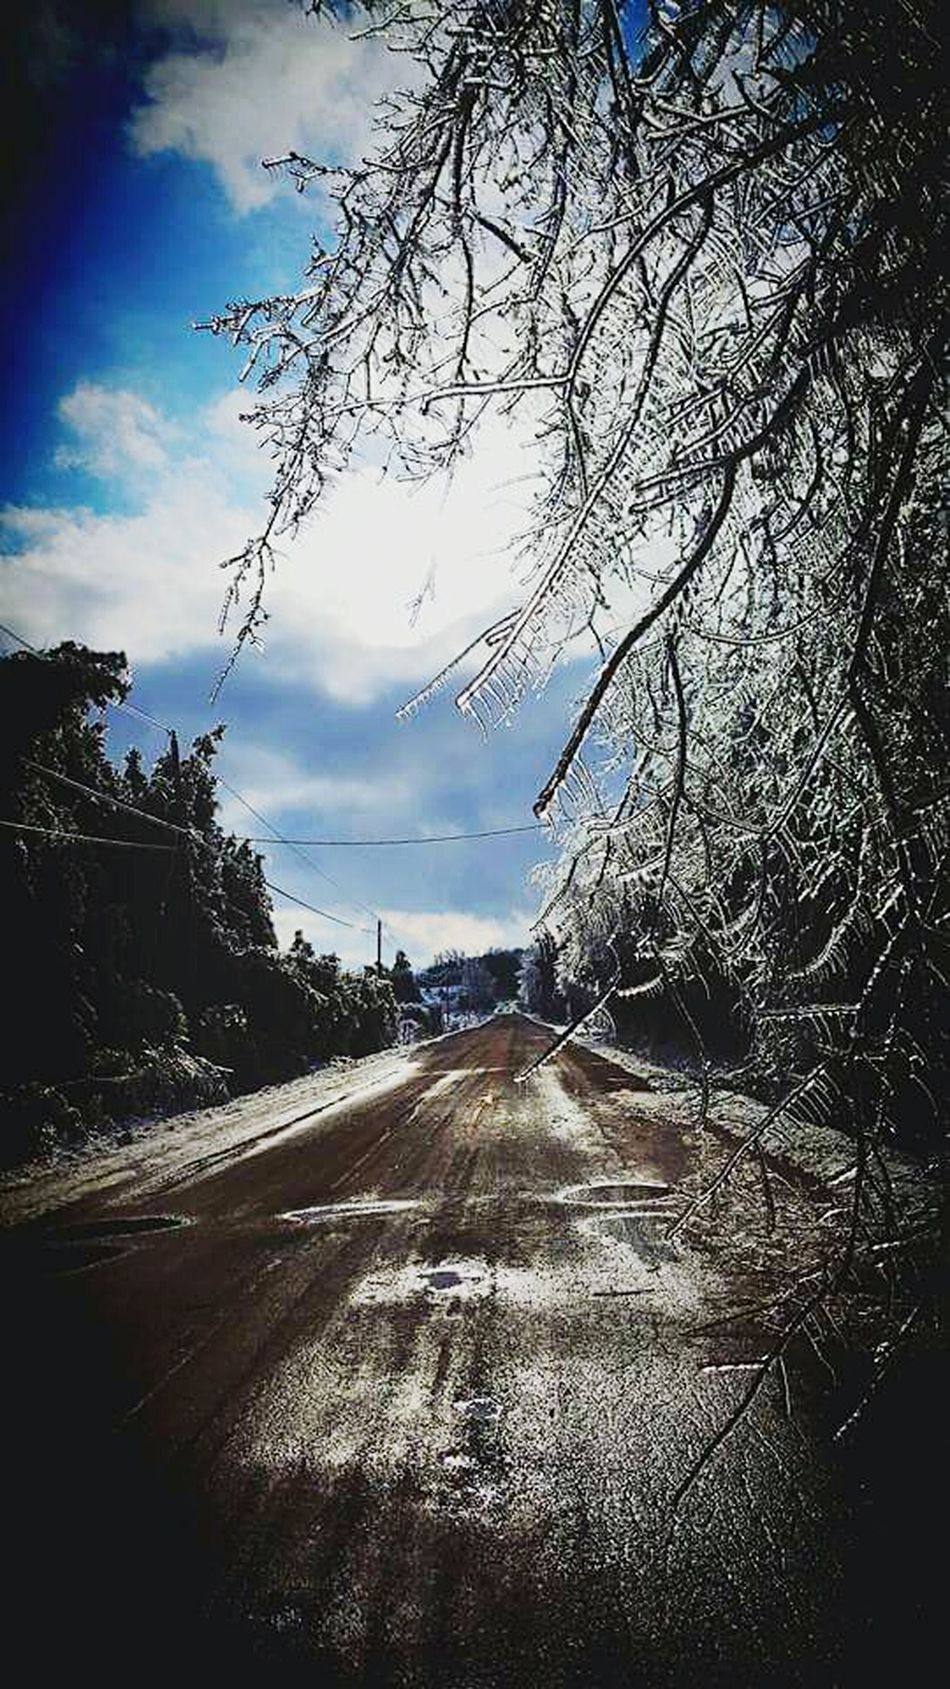 EyeEmNewHere Country Girl Eye For Photography Roadside Canadianwinter Ice Storm Icicles Dirtroads Viasindios Tree Beauty In Nature